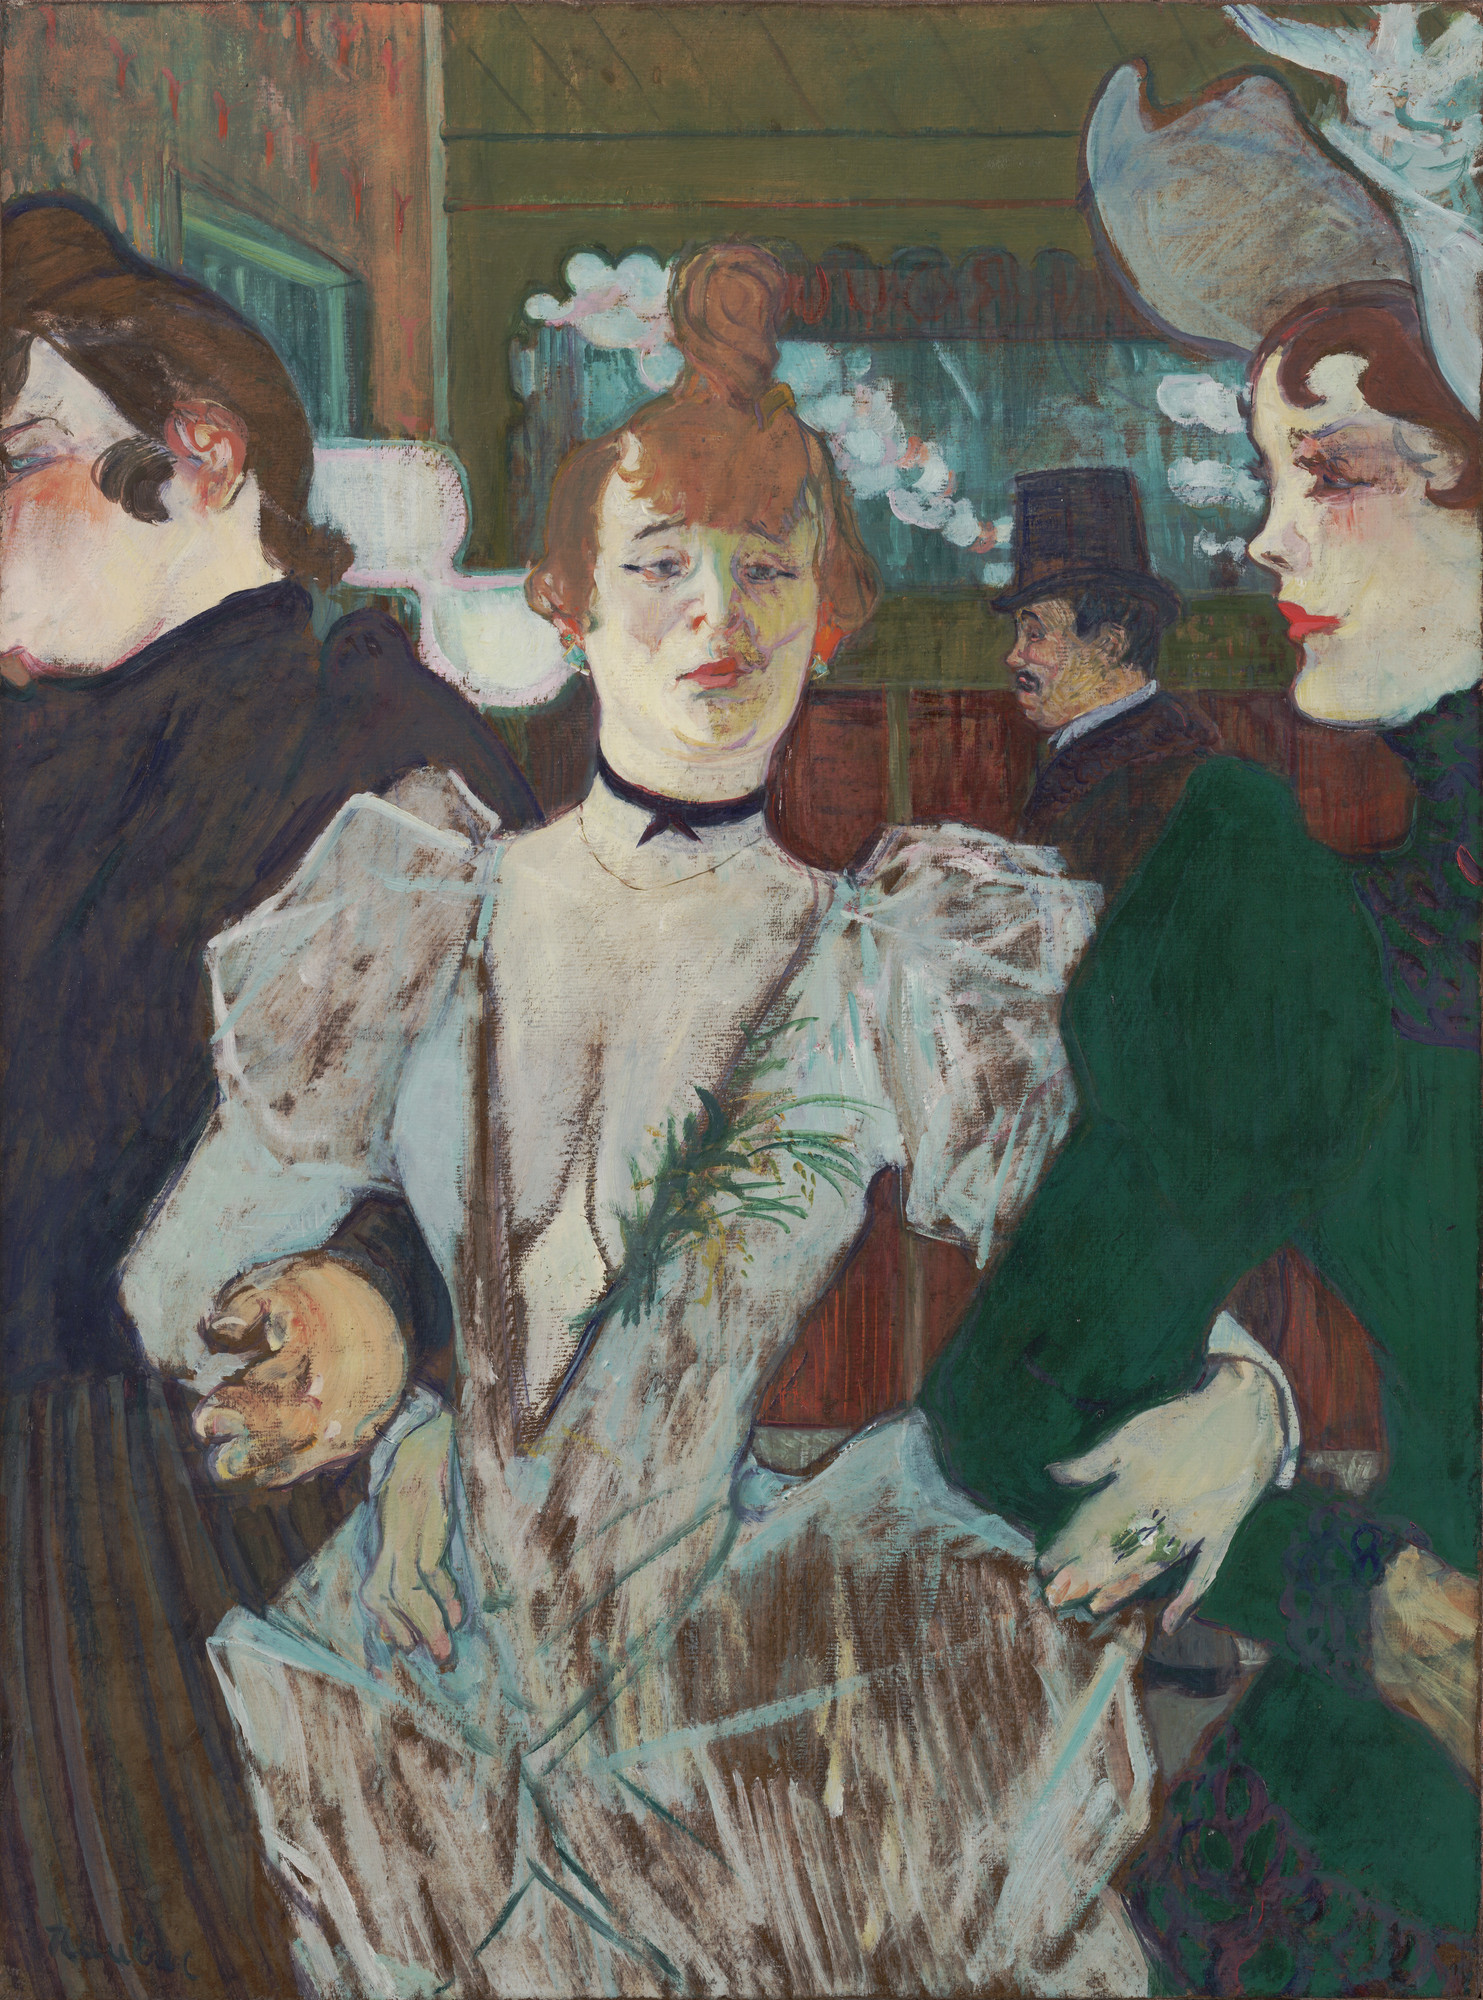 Henri de Toulouse-Lautrec. La Goulue at the Moulin Rouge. (1891-92)